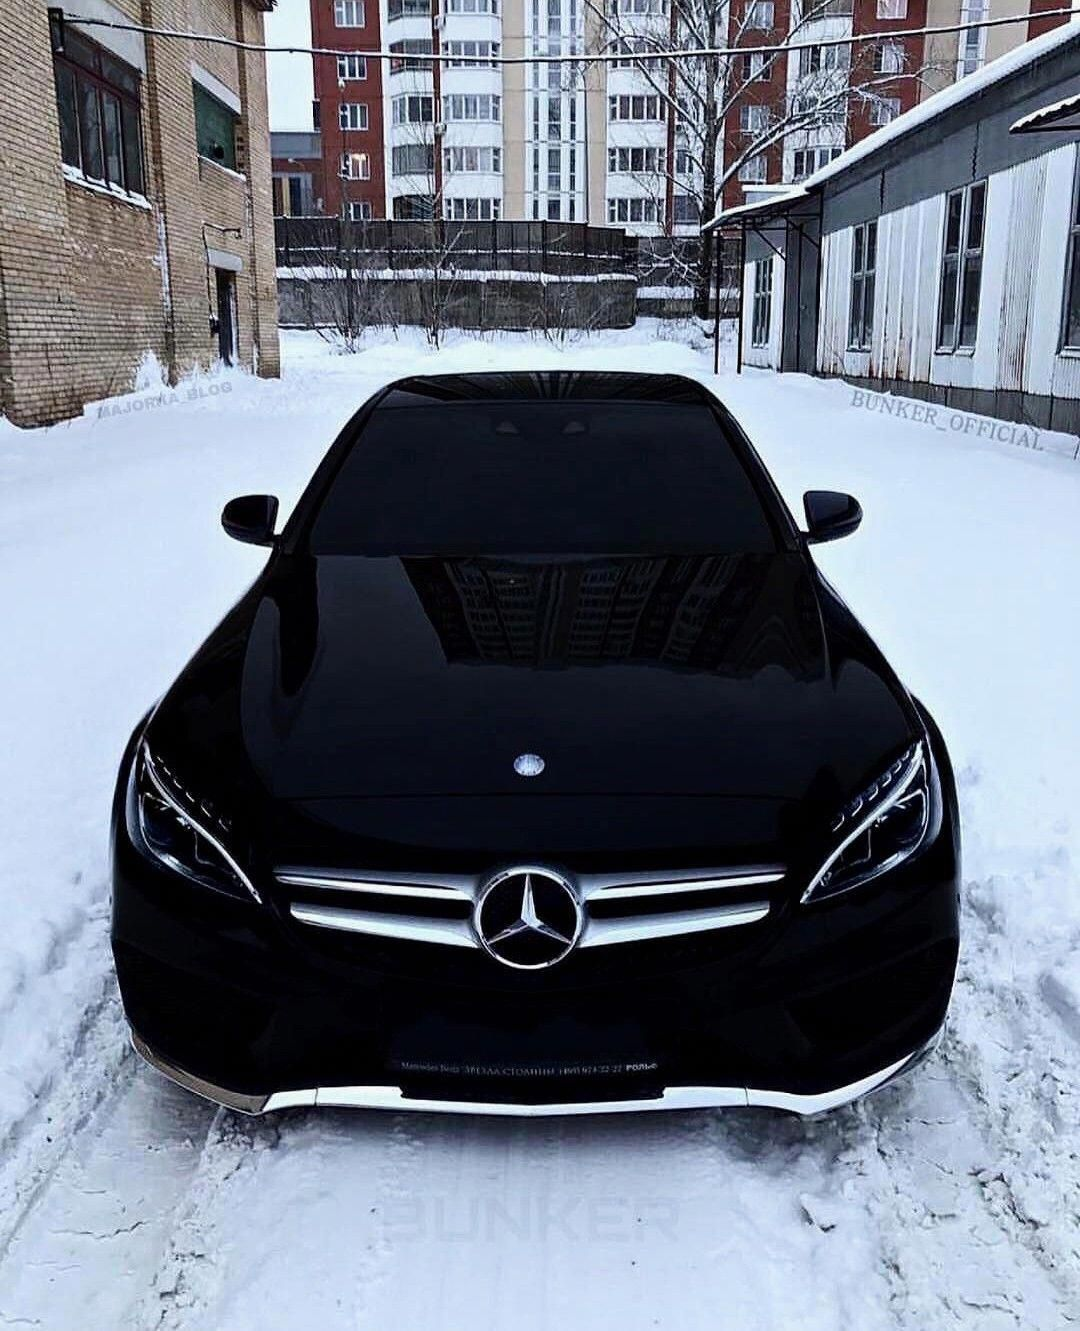 The Most Luxury Cars In The World With Best Photos Of Cars Best Luxury Cars Mercedes C250 Top Luxury Cars